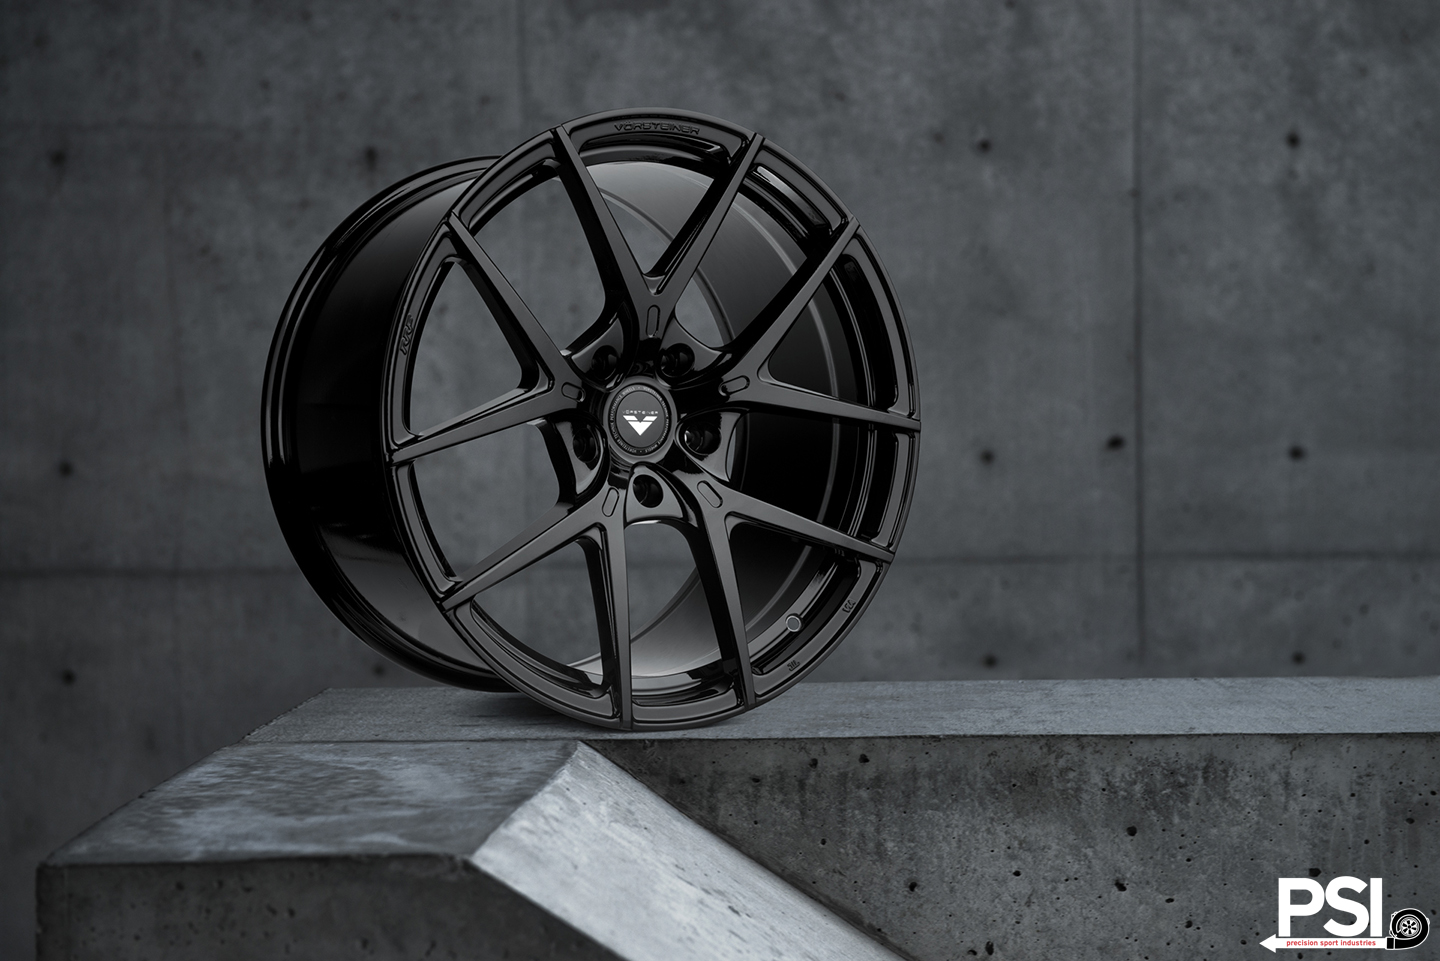 Vorsteiner Flowform Wheels by PSI